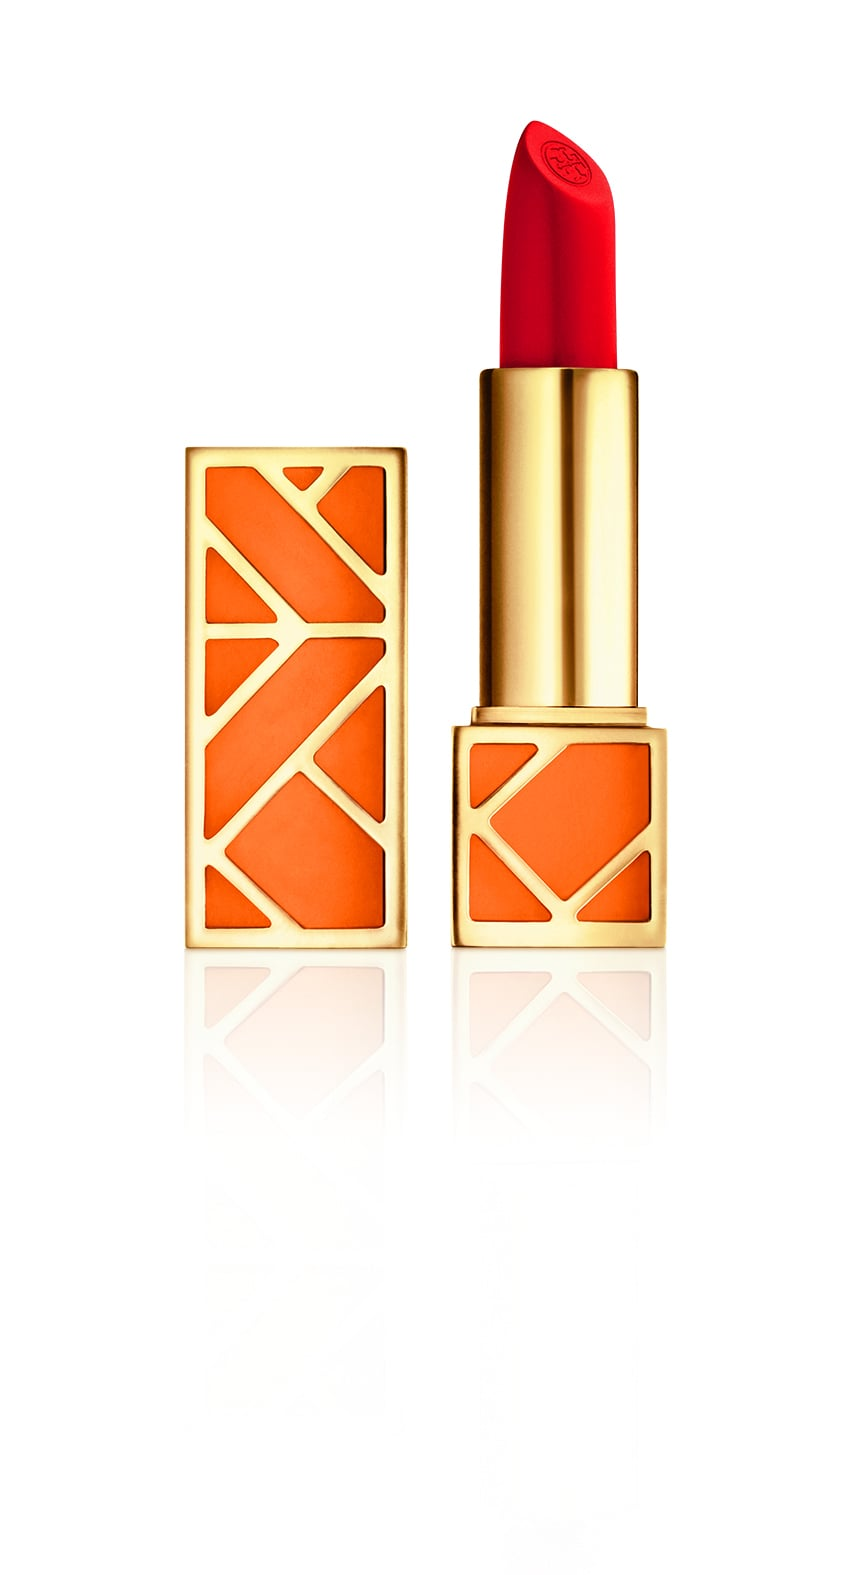 Tory Burch Lip Color in Smack Dab